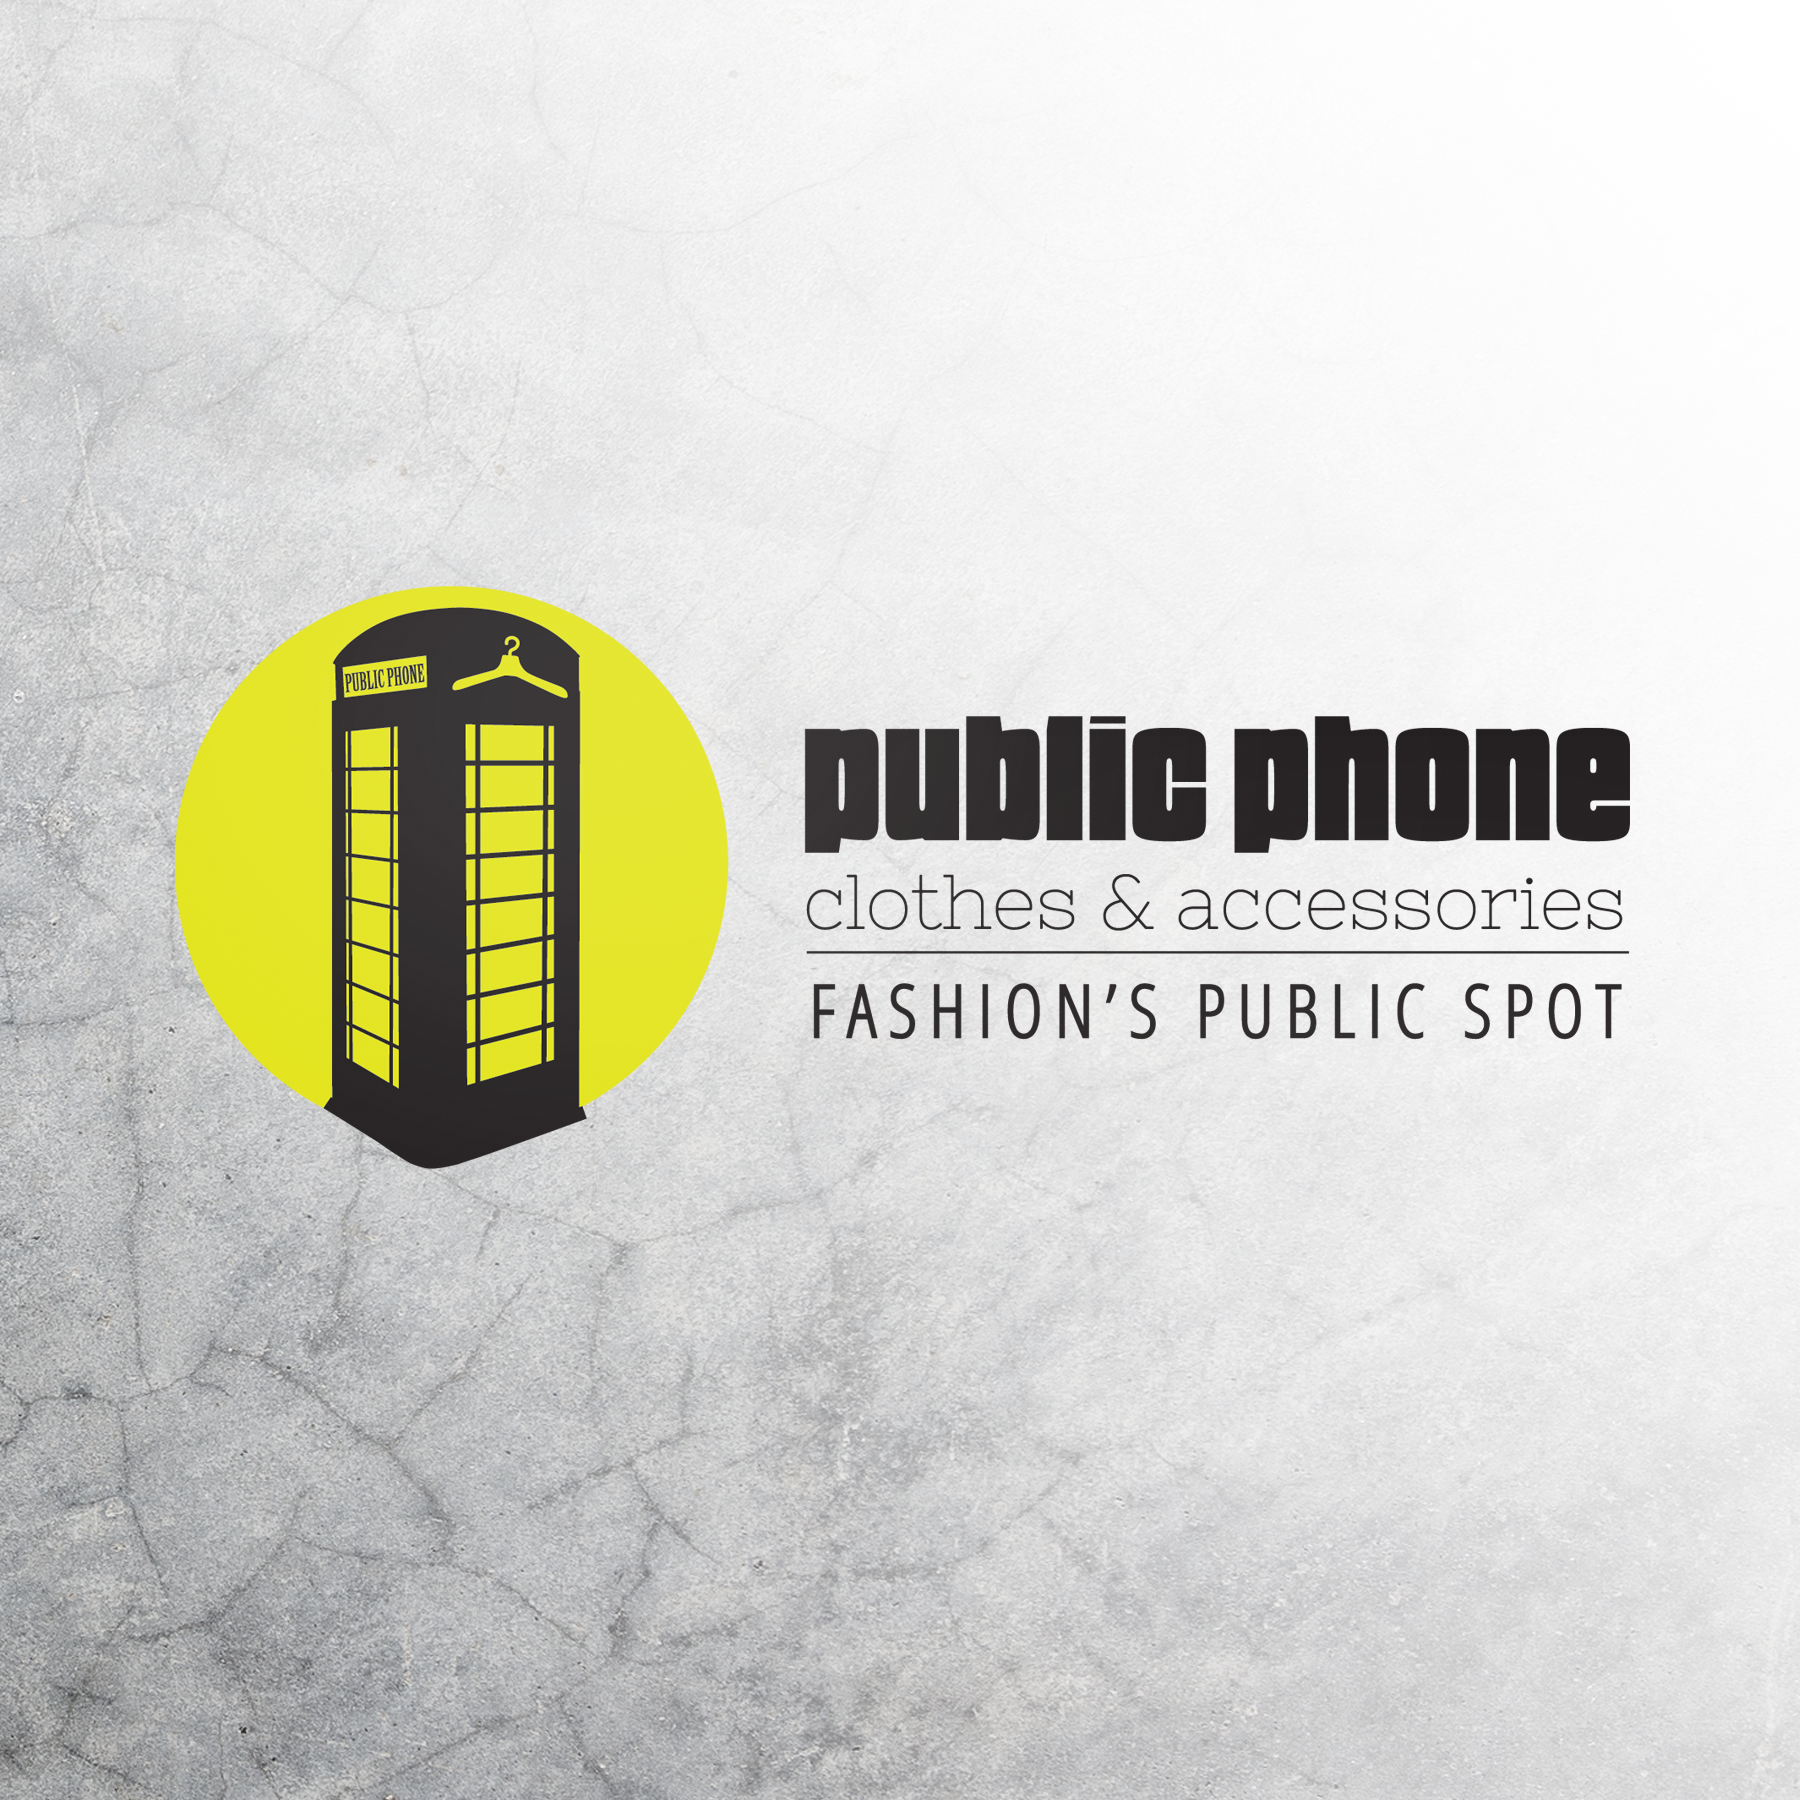 Public Phone fashion logo